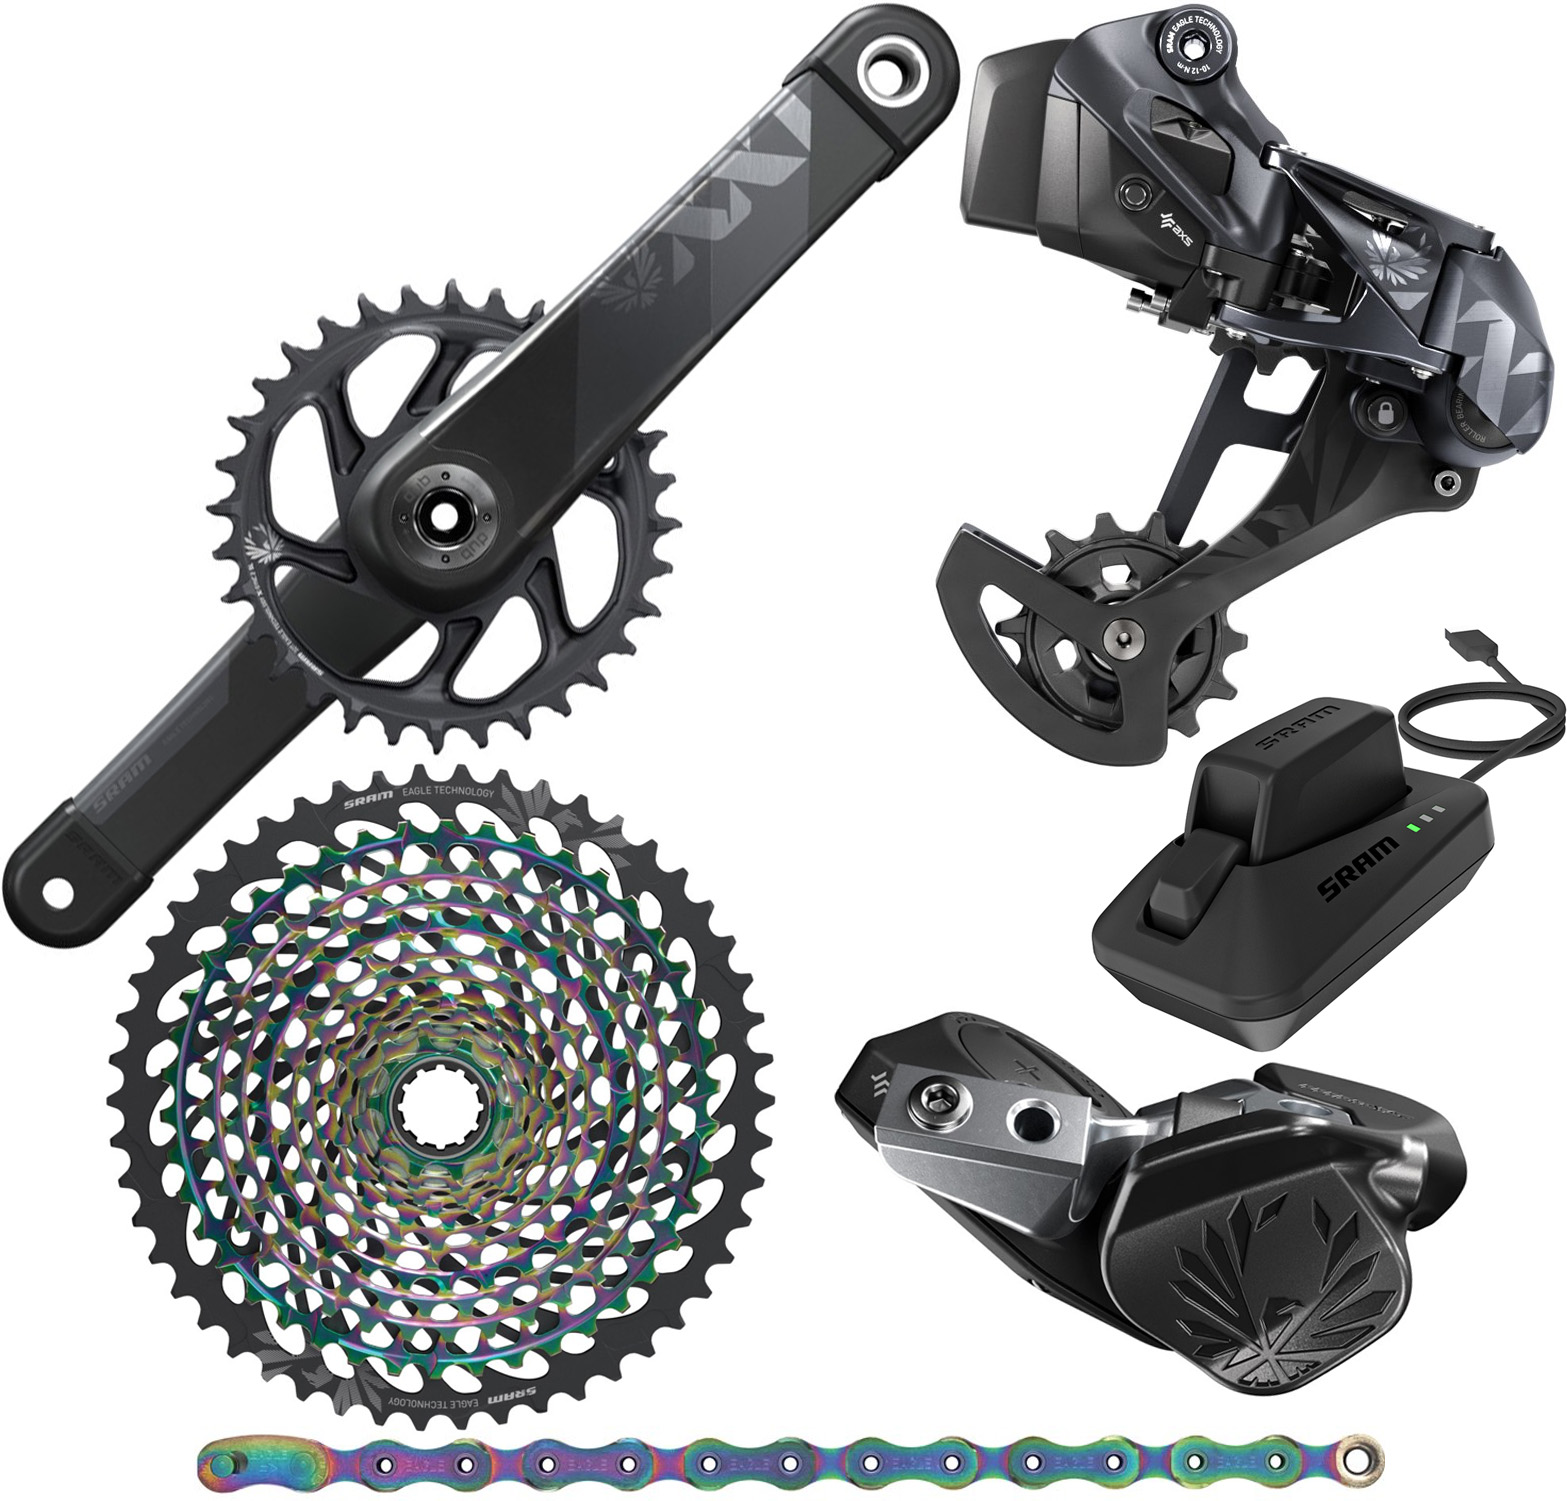 SRAM XX1 Eagle AXS DUB 12Sp Groupset | Groupsets